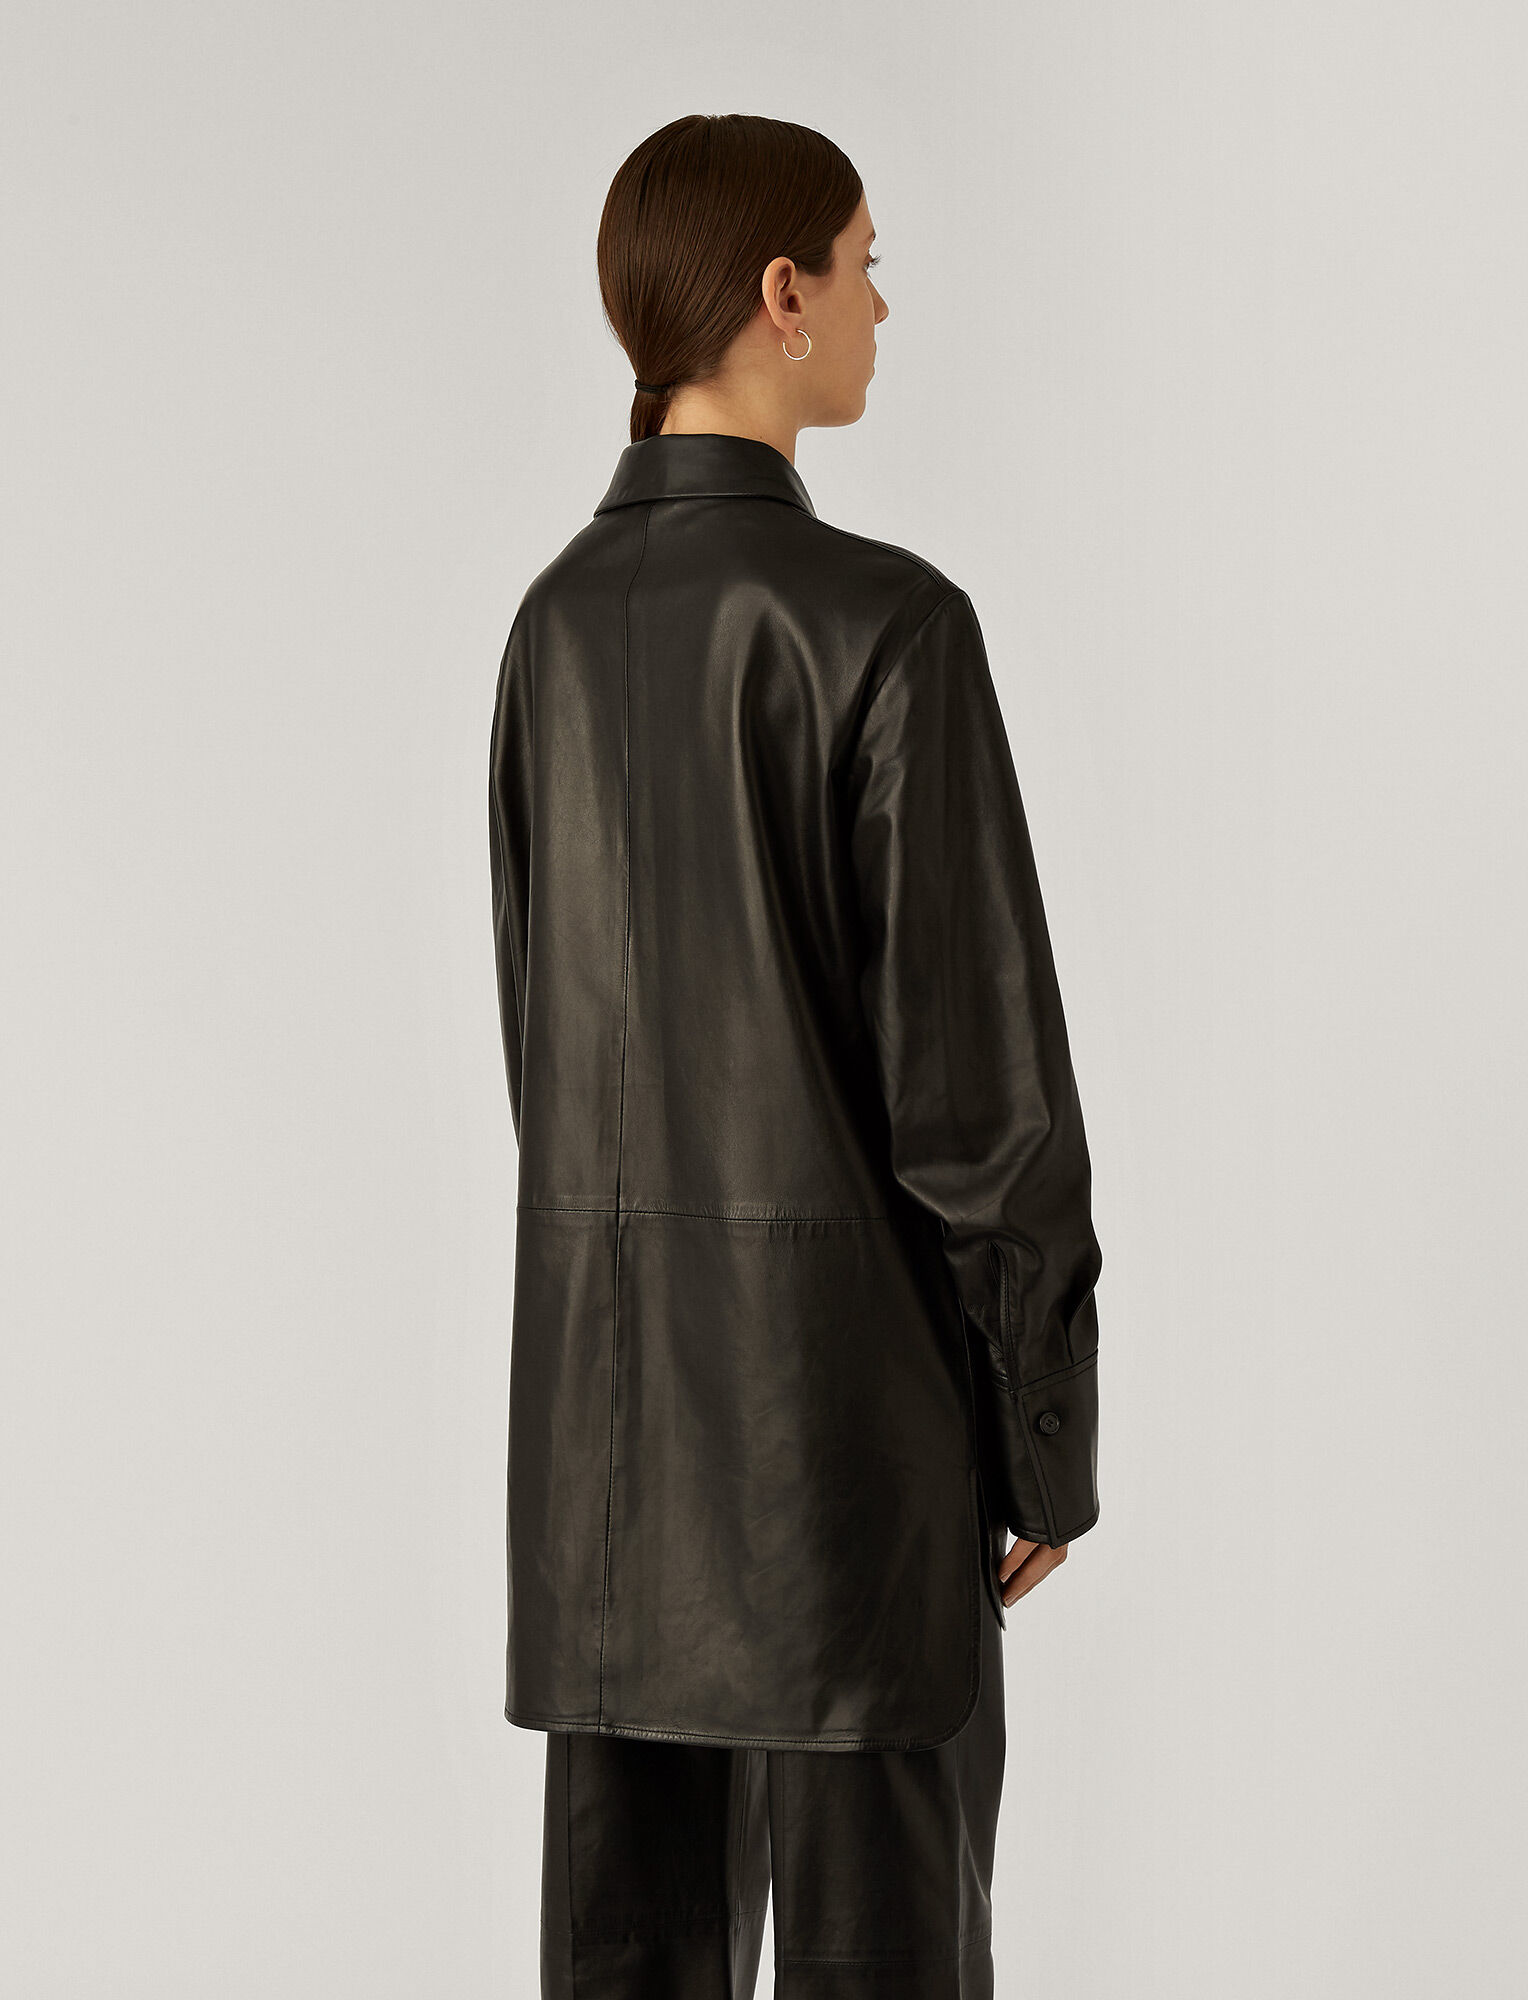 Joseph, Jason Nappa Leather Outer, in Black